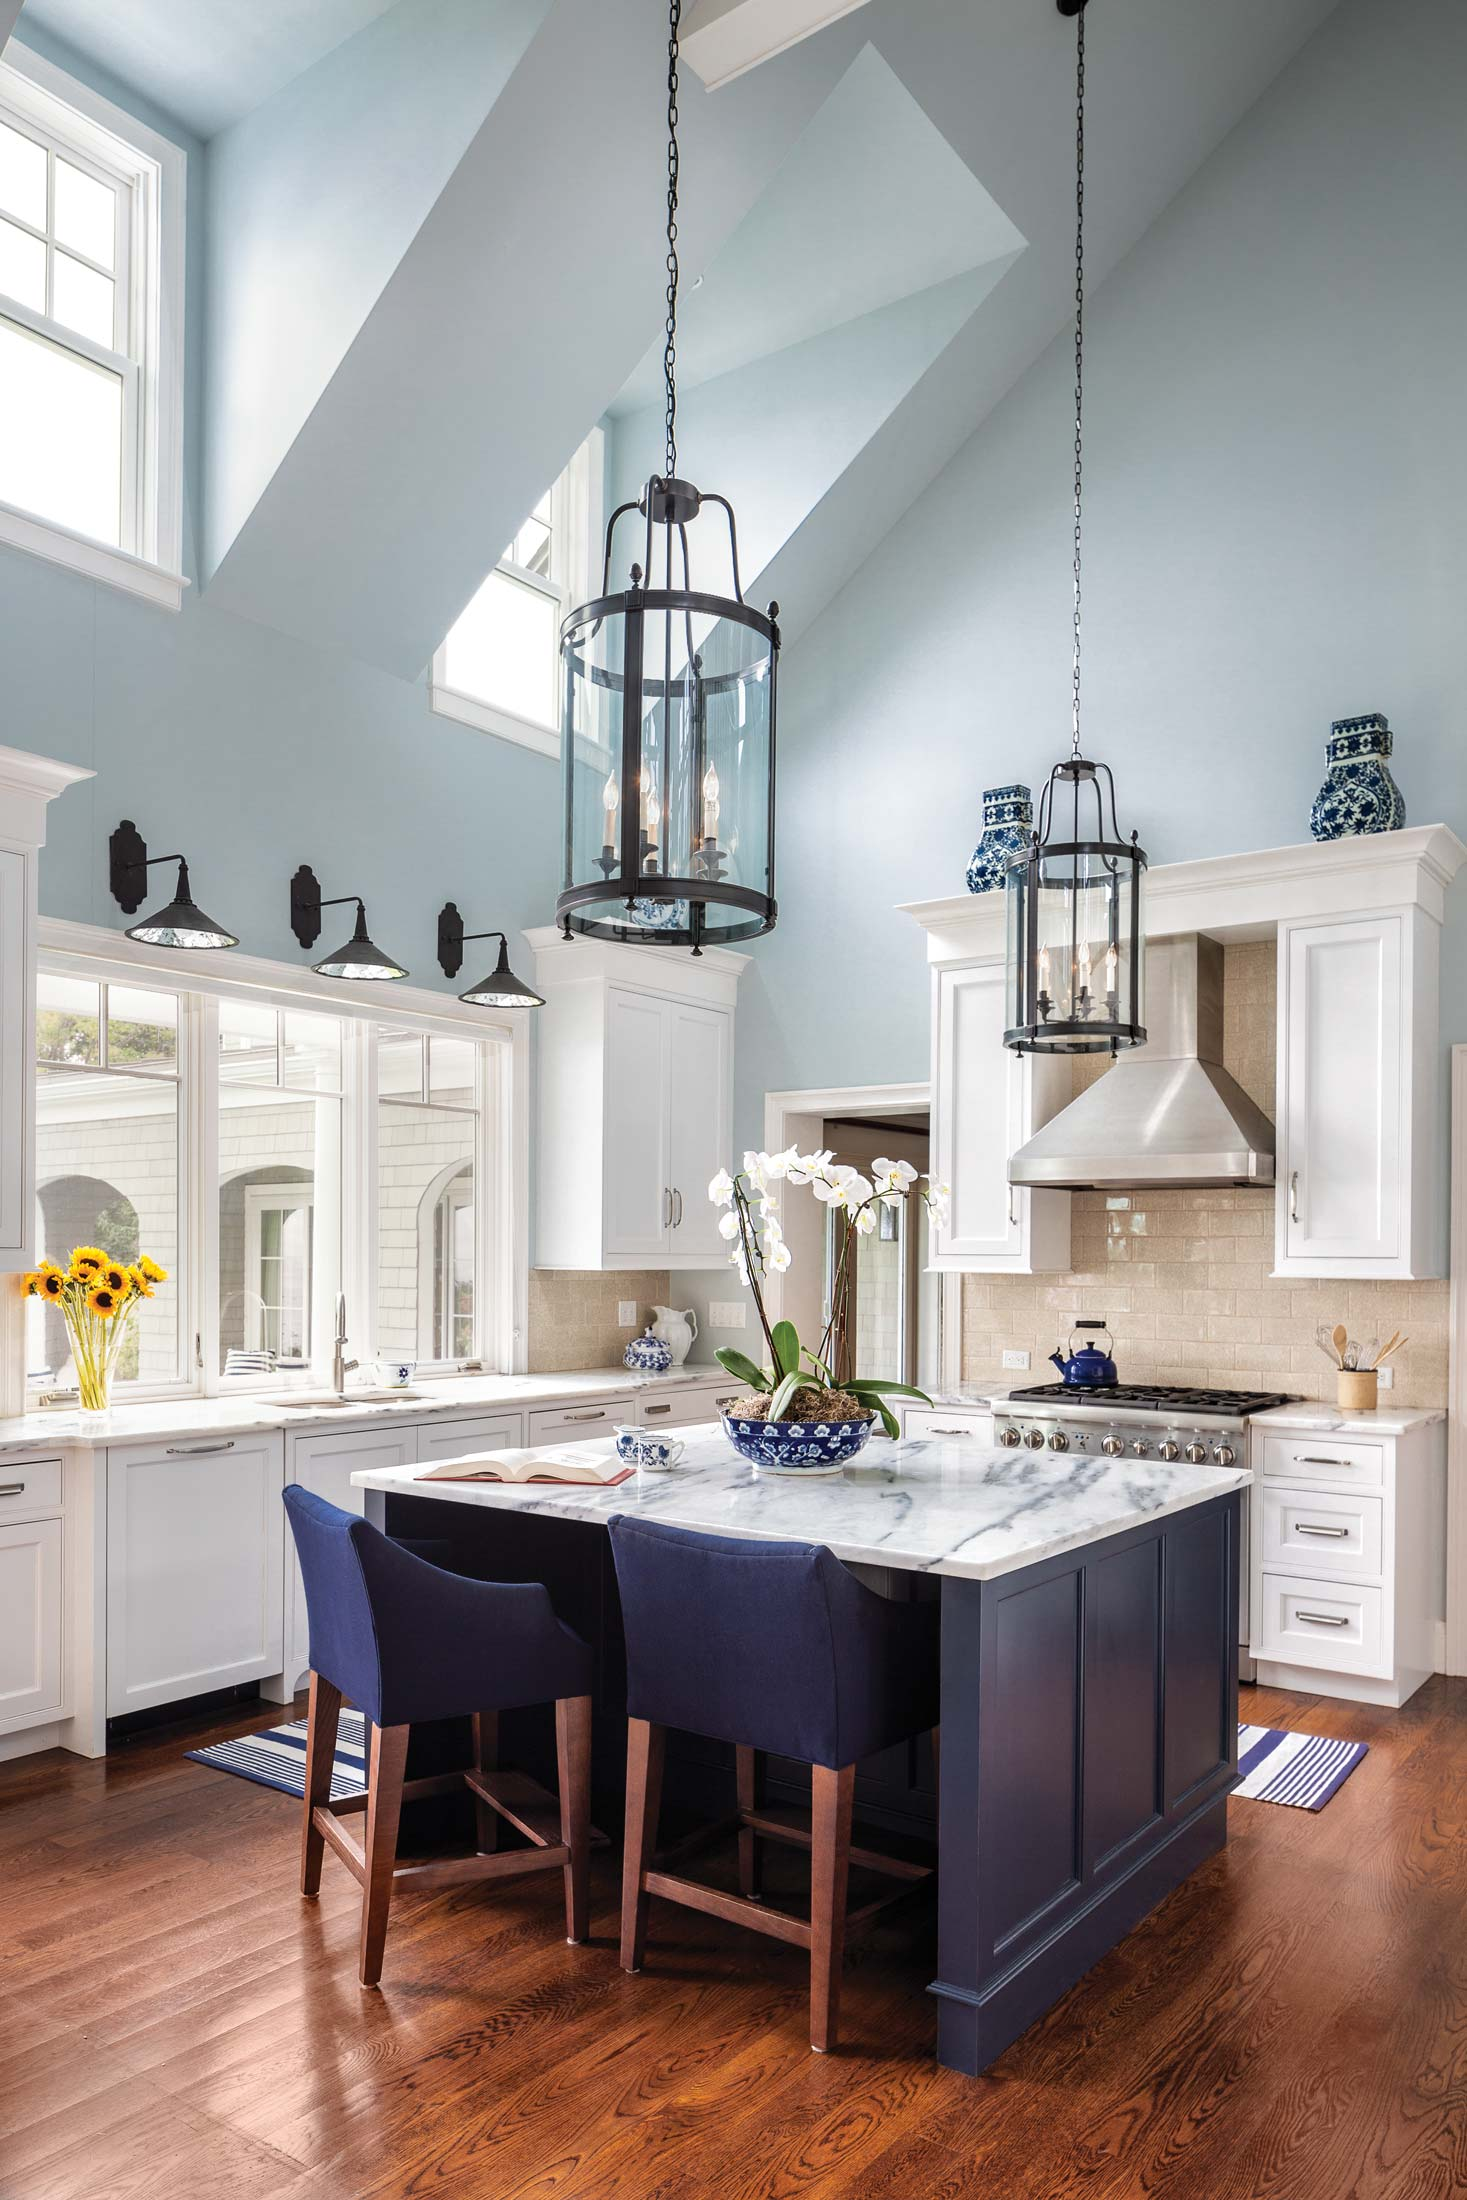 In the kitchen, marble countertops by Arens Stoneworks, pendant lamps from Simply Home, and cabinetry by Alex Hamilton of Tidewater Millwork make clean, classic statements.